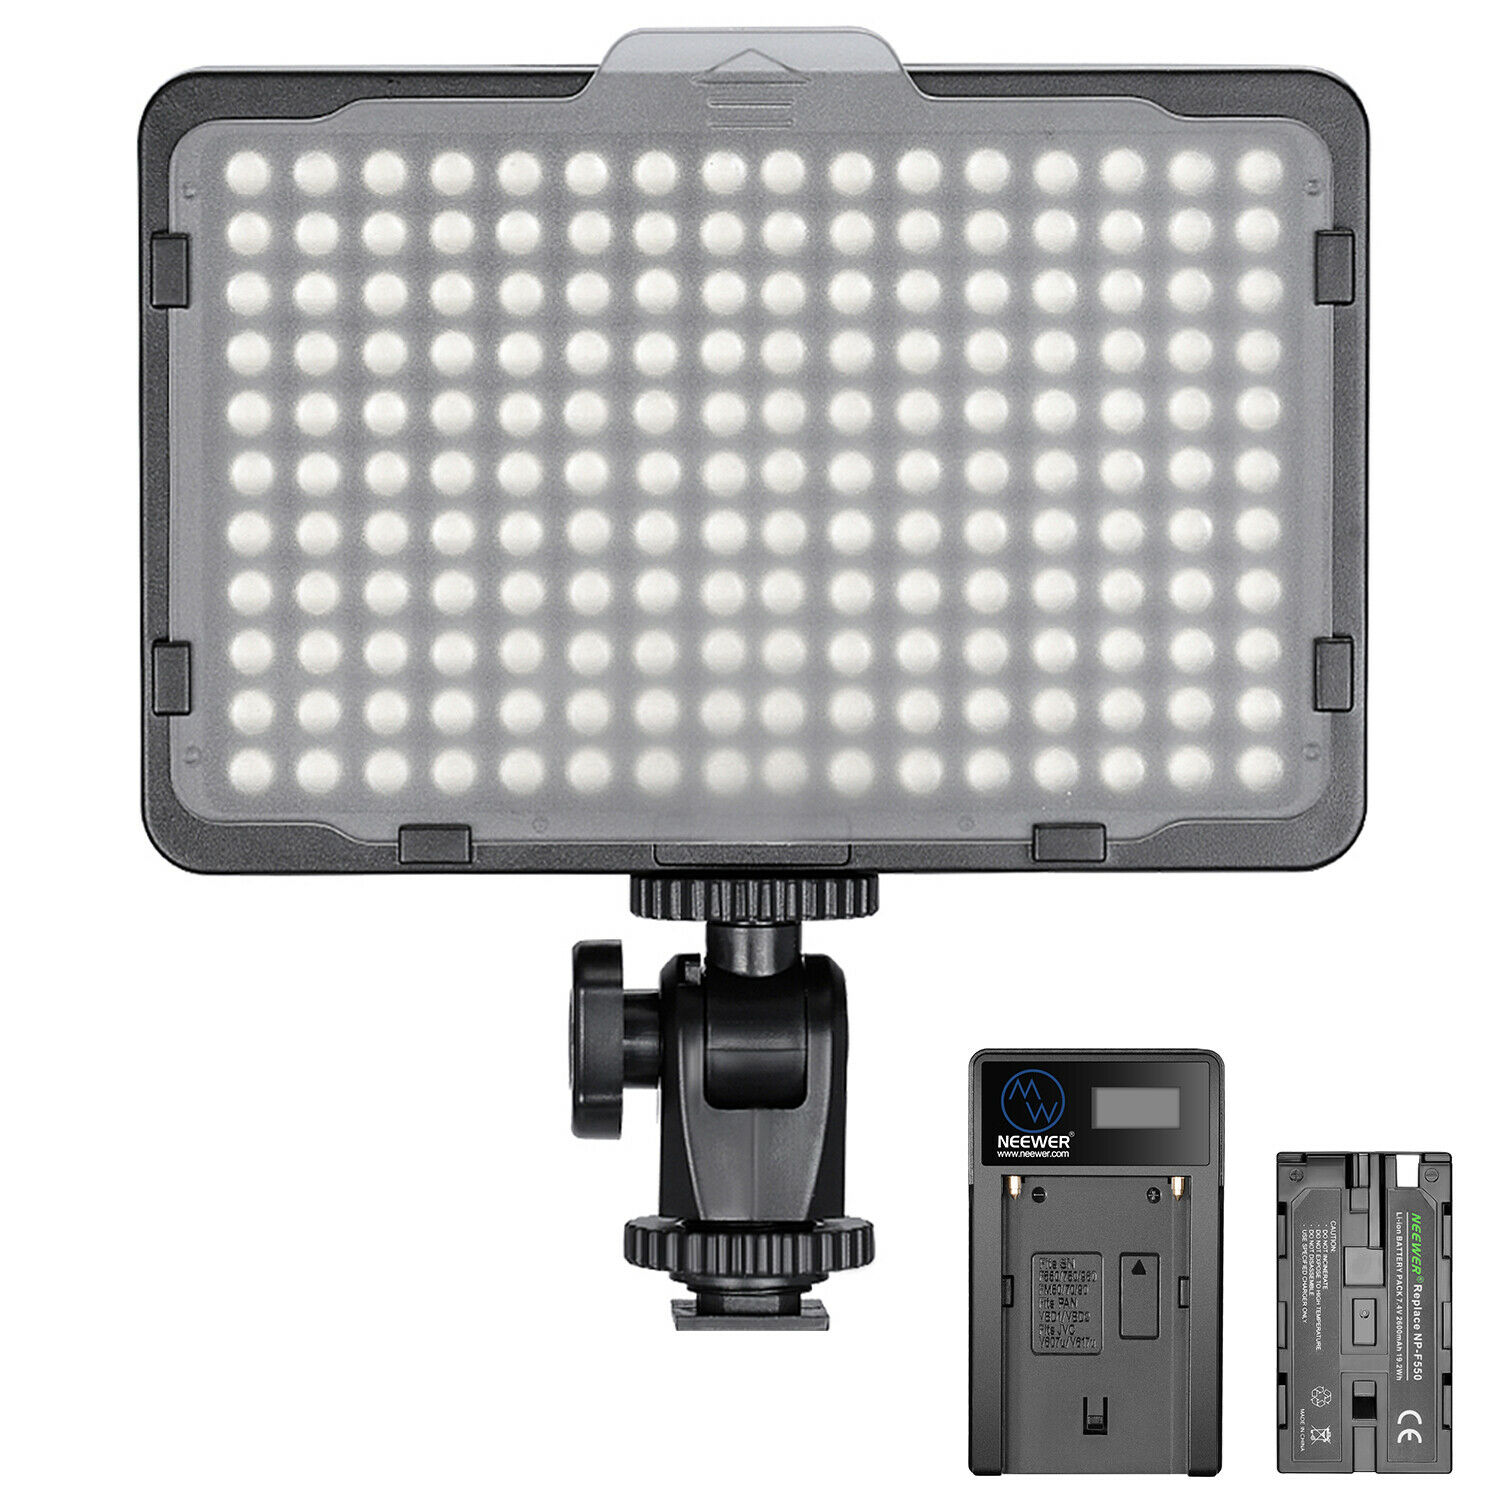 Neewer Dimmable 176 LED Video Light on Camera Light Panel with Battery & Charger